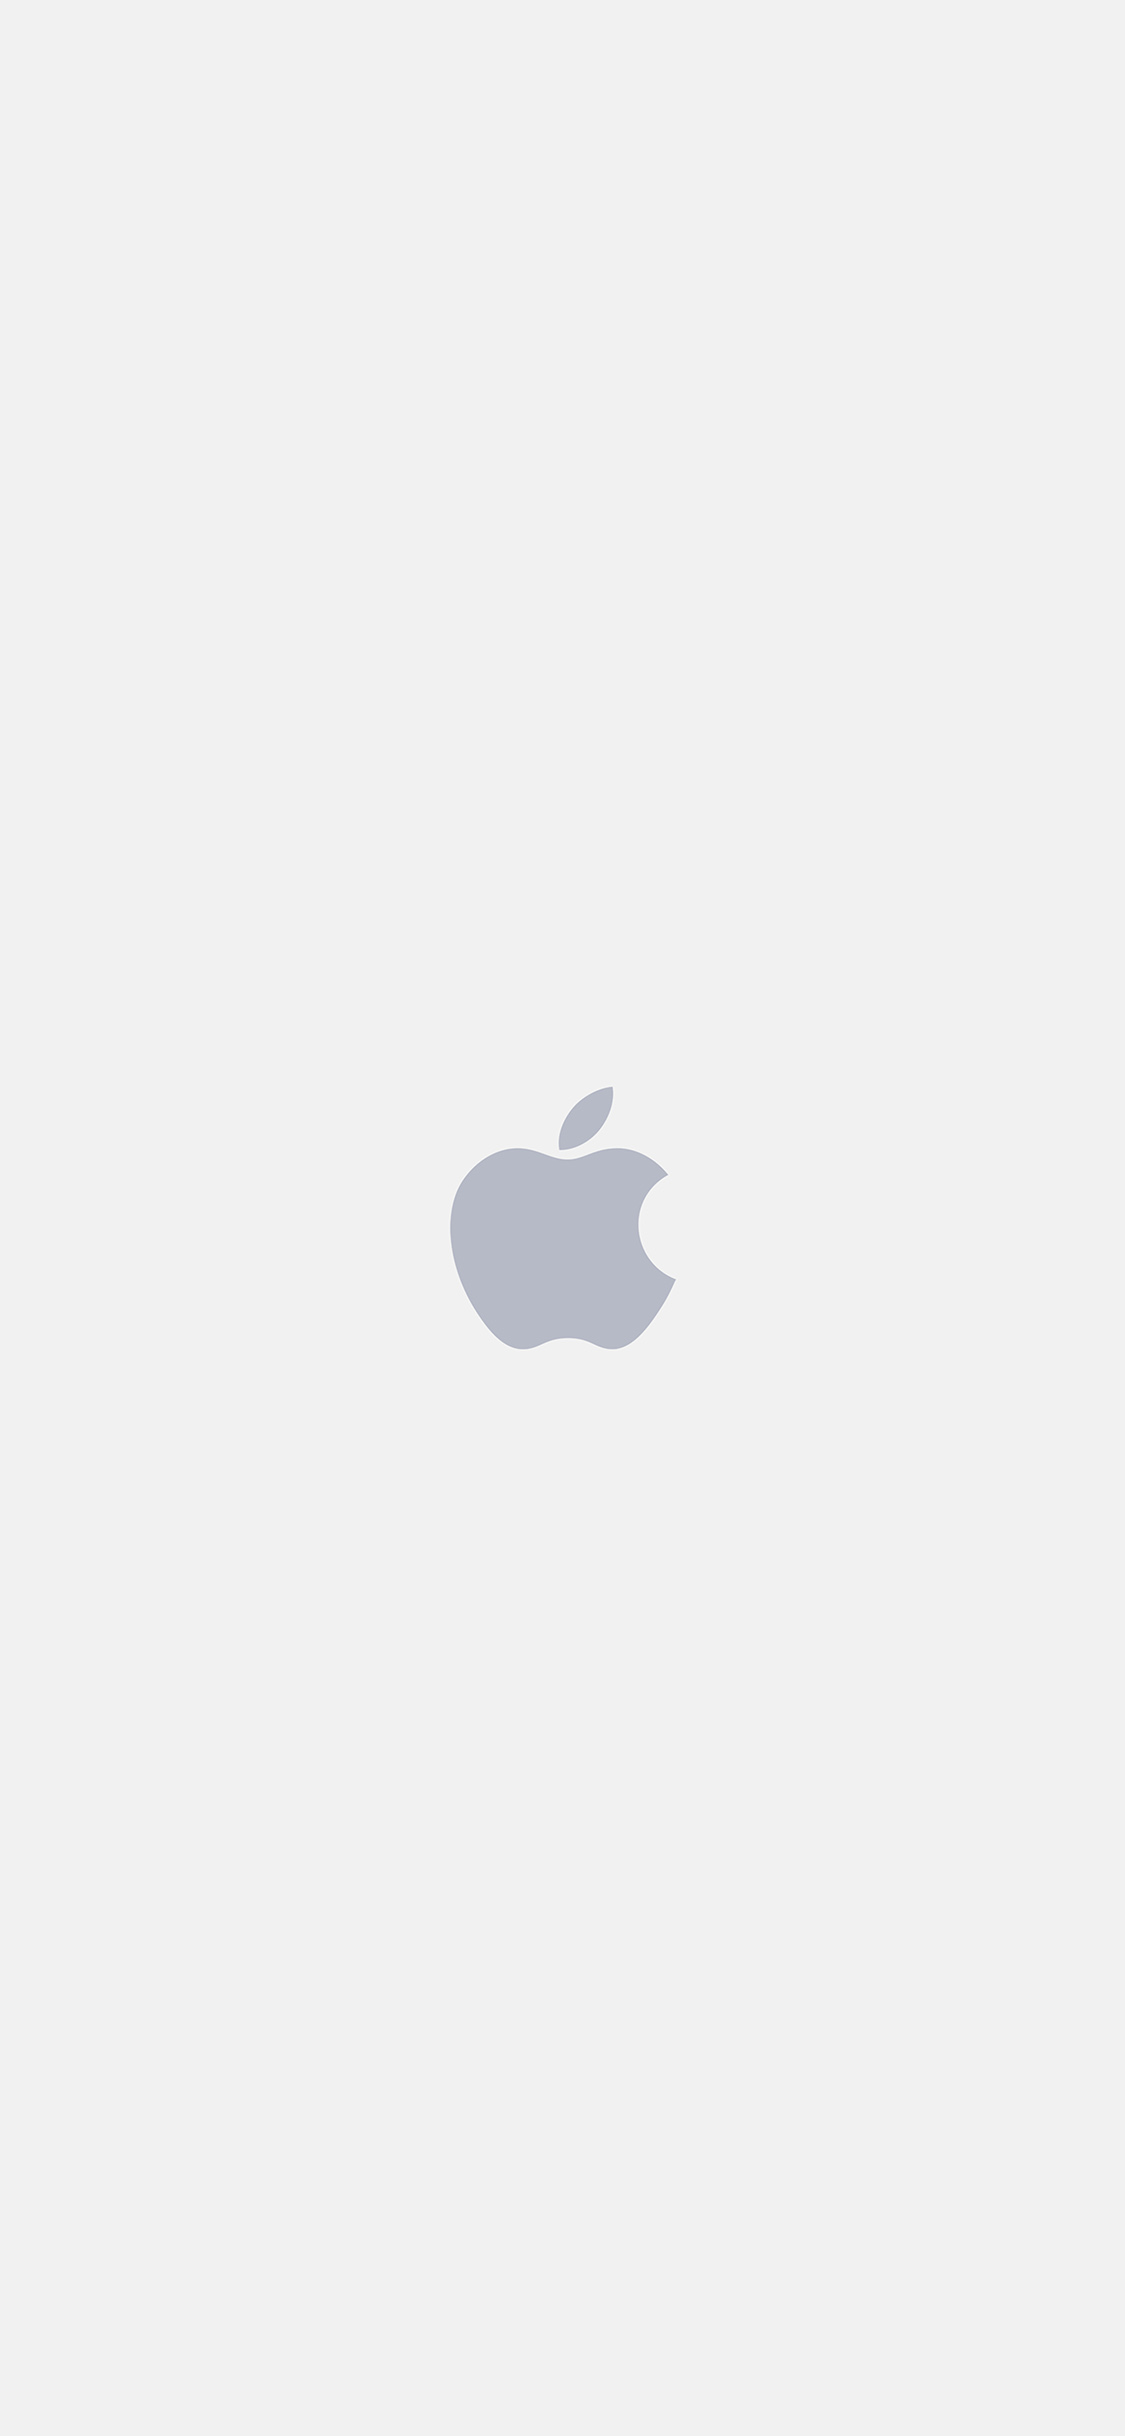 iPhoneXpapers.com-Apple-iPhone-wallpaper-as67-iphone7-apple-logo-white-art-illustration